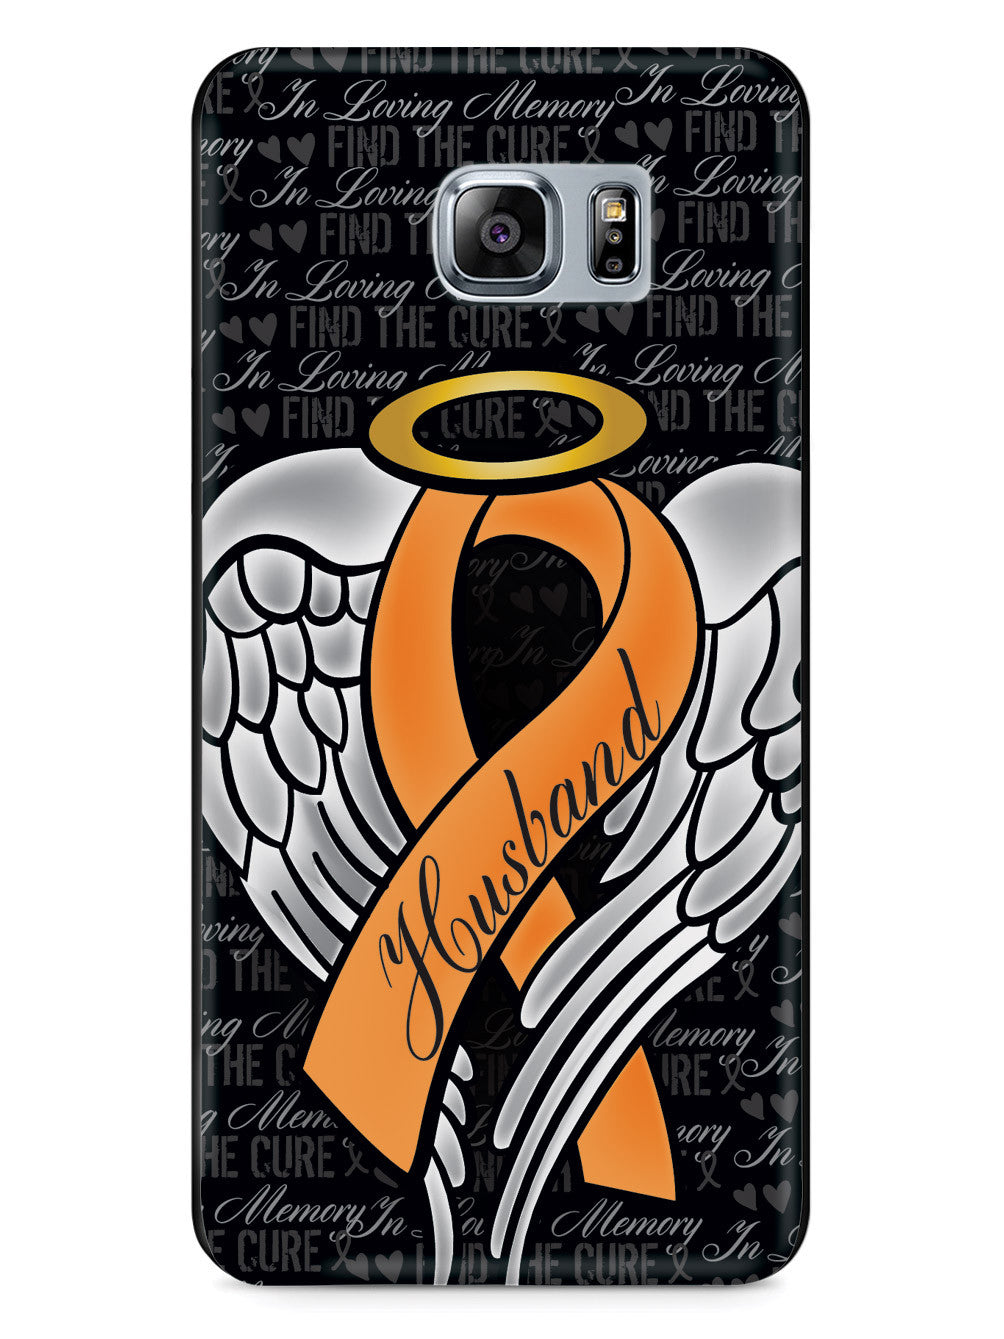 In Loving Memory of My Husband - Orange Ribbon Case